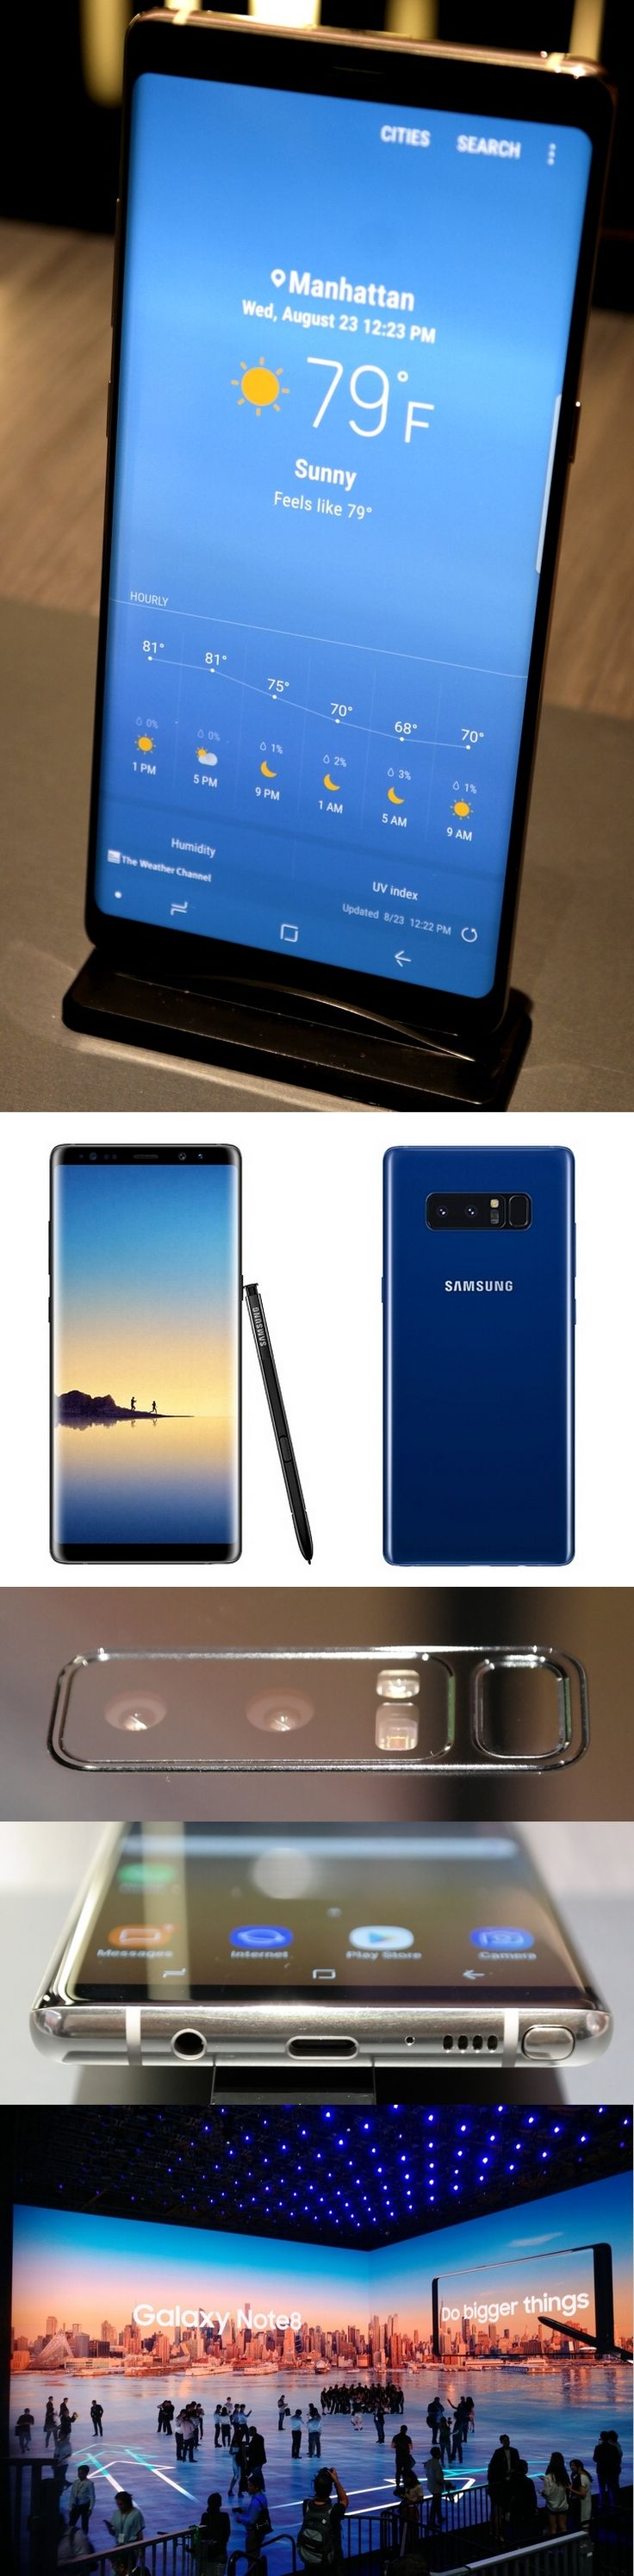 The Samsung Galaxy Note 8 is a proud, yet humble smartphone which seems ready to extinguish the smoke-and-fire issues of the doomed Note 7. The Note 8 has a curved 6.3-inch Infinity Display like the Galaxy S8 and S8+ and a new S Pen stylus which lets you write on the screen at any time. DSLR-like image stabilization is built into the two 12MP rear cameras and, unlike Apple's iPhones, the Note 8 has a headphone jack and a microSD slot for extra storage. But $930? On sale Sept. 15…